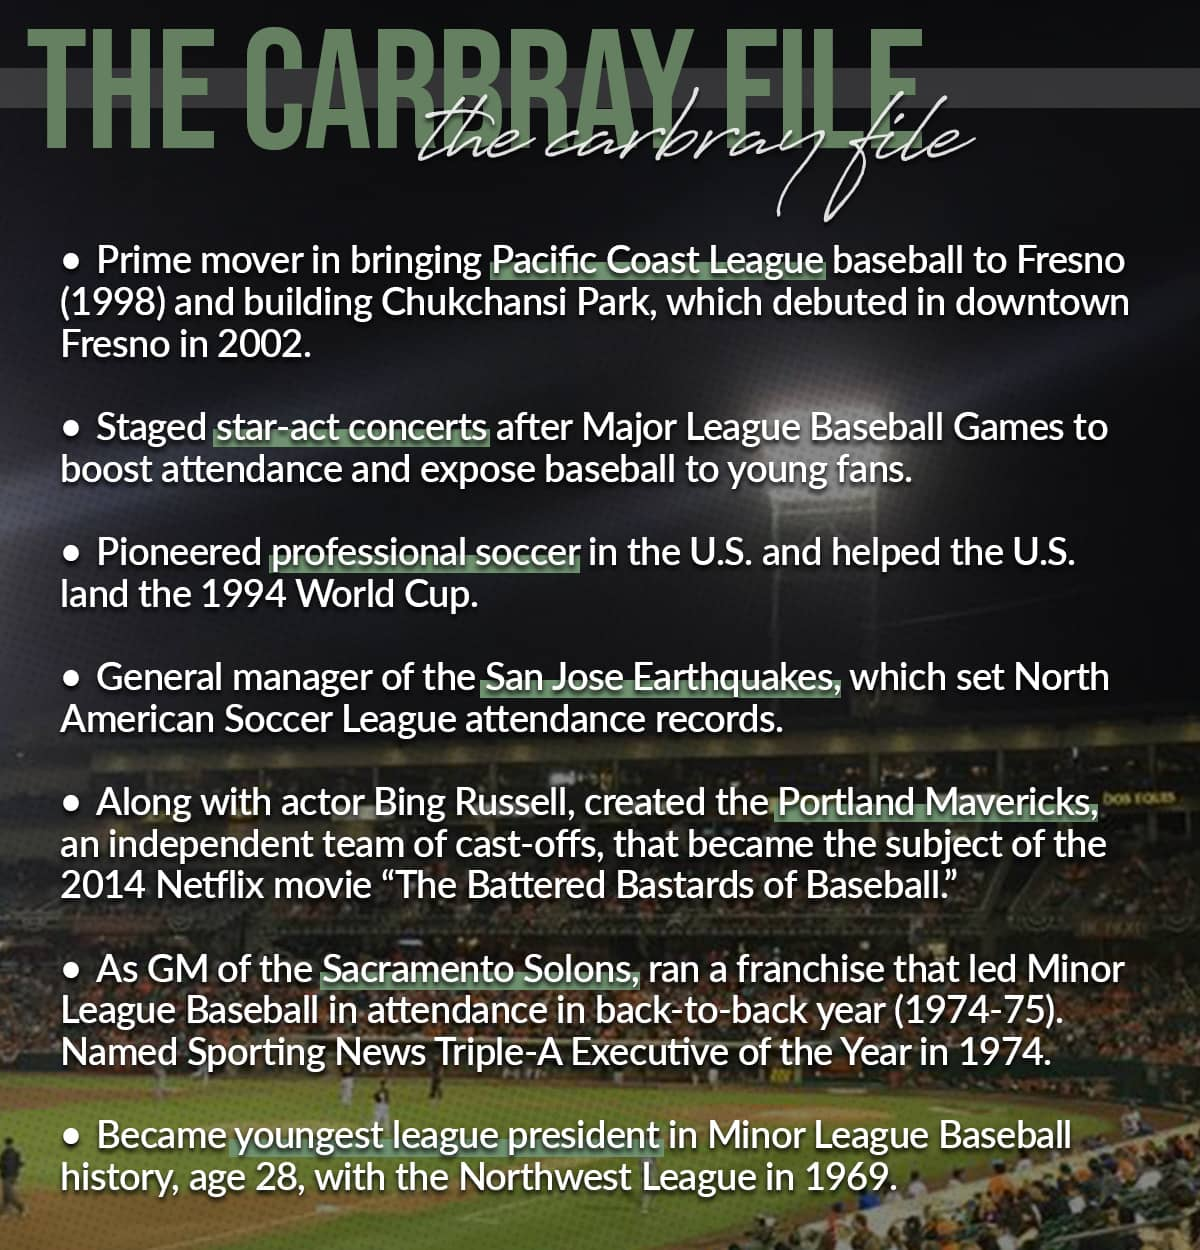 Graphic of highlights of John Carbray's career